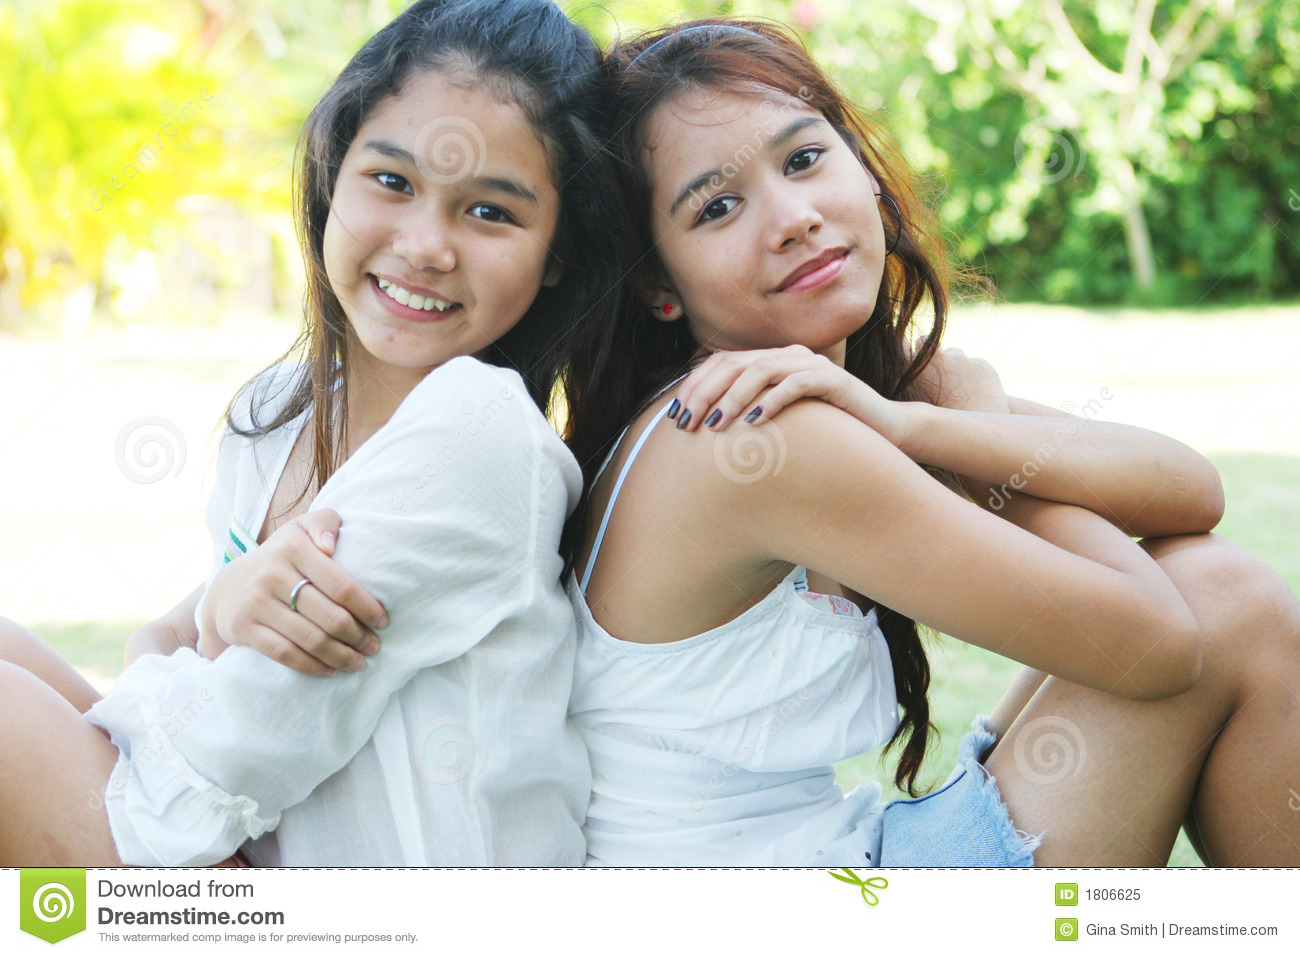 el arrayan single asian girls There are many american men dating and marrying foreign brides, if you seeking an asian woman for dating or marriage.